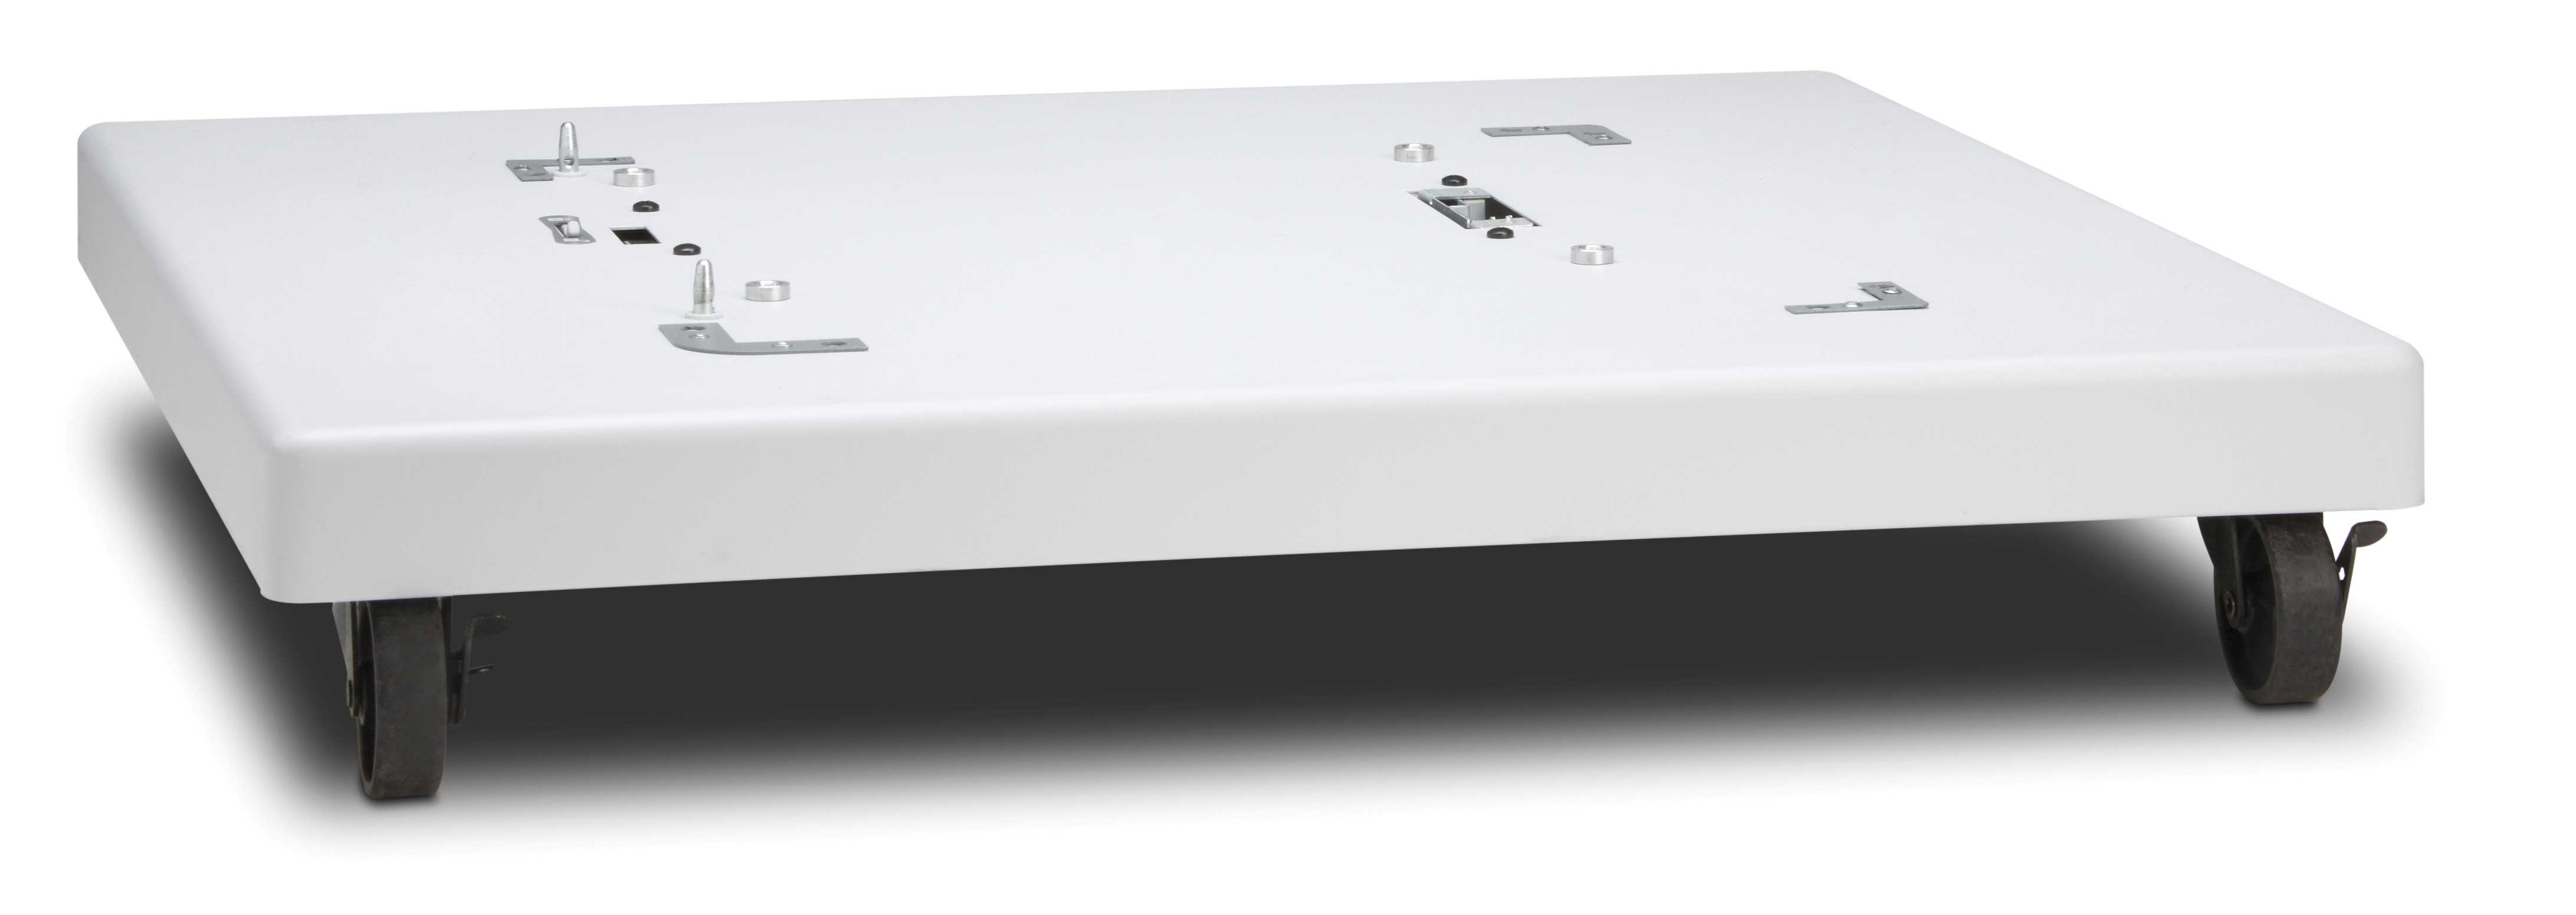 HP rolling printer stand with low height